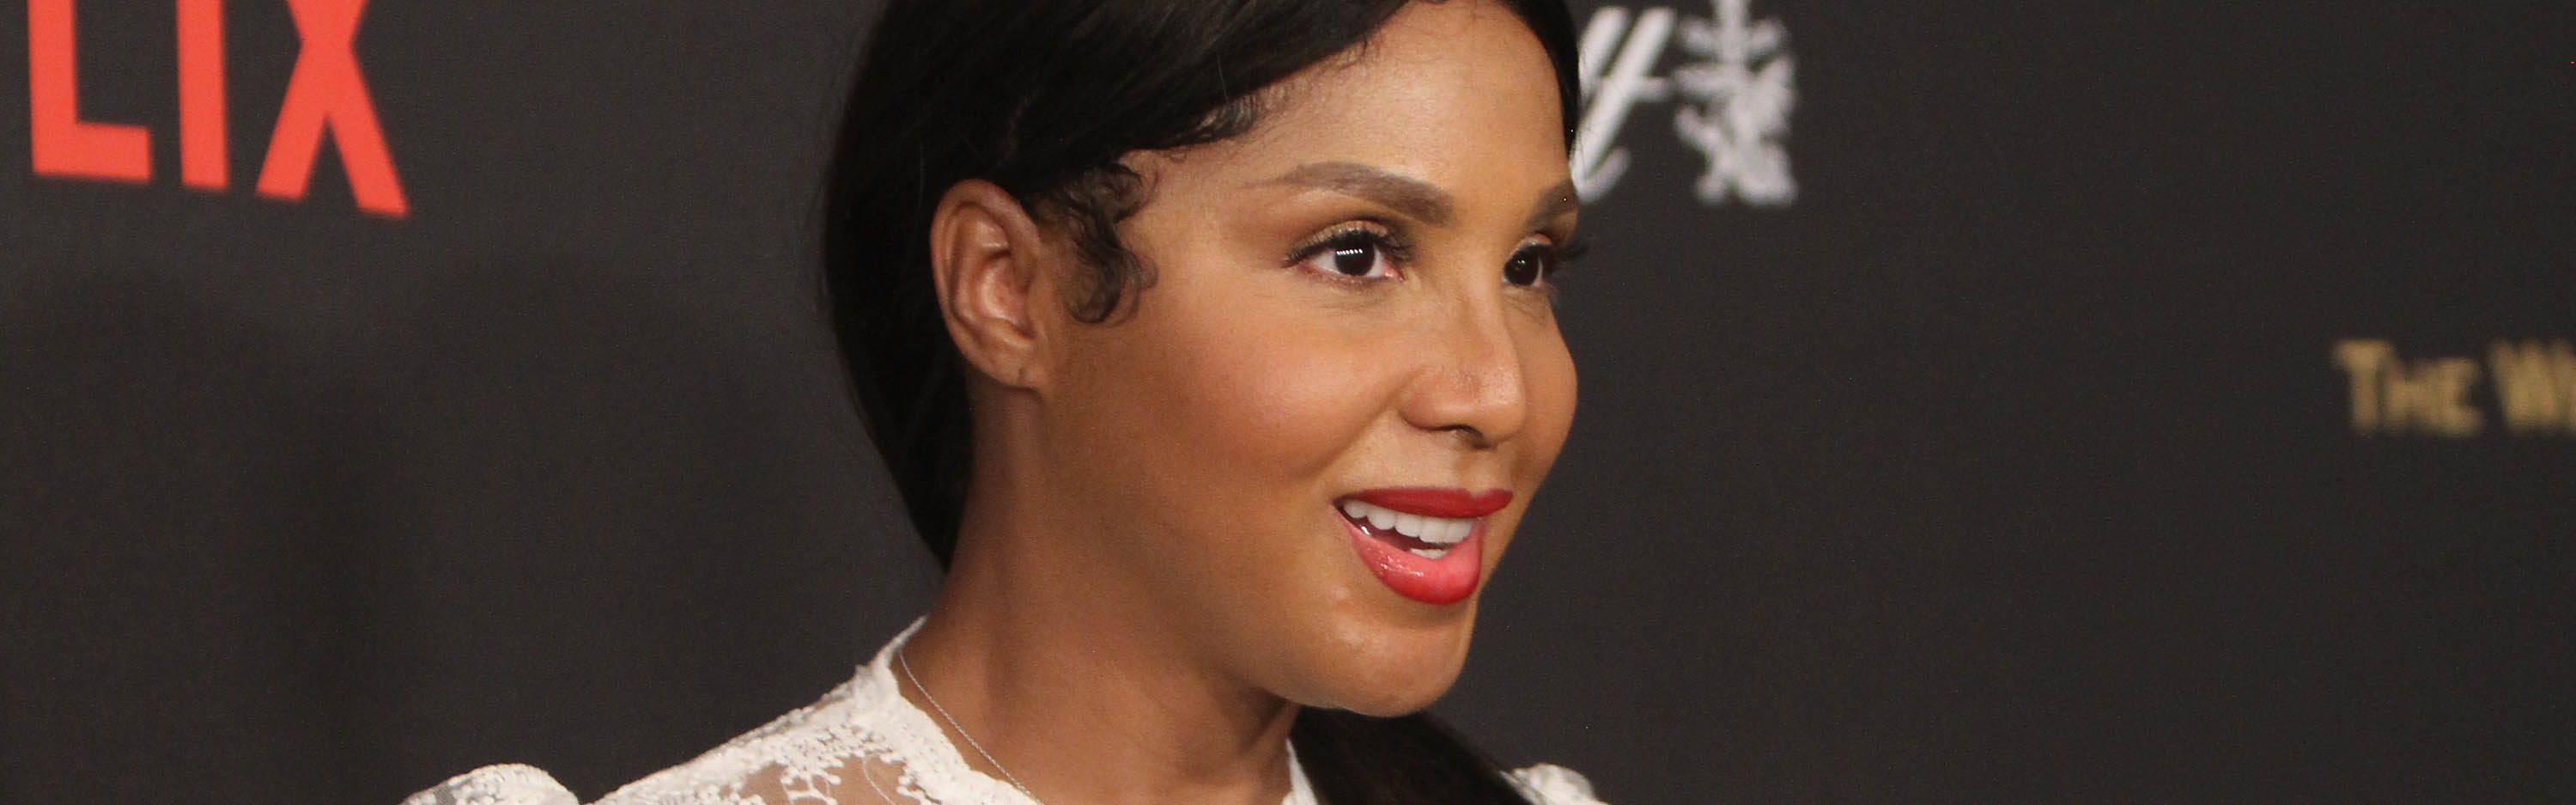 Toni Braxton Photo by Randy Shropshire/Getty Images